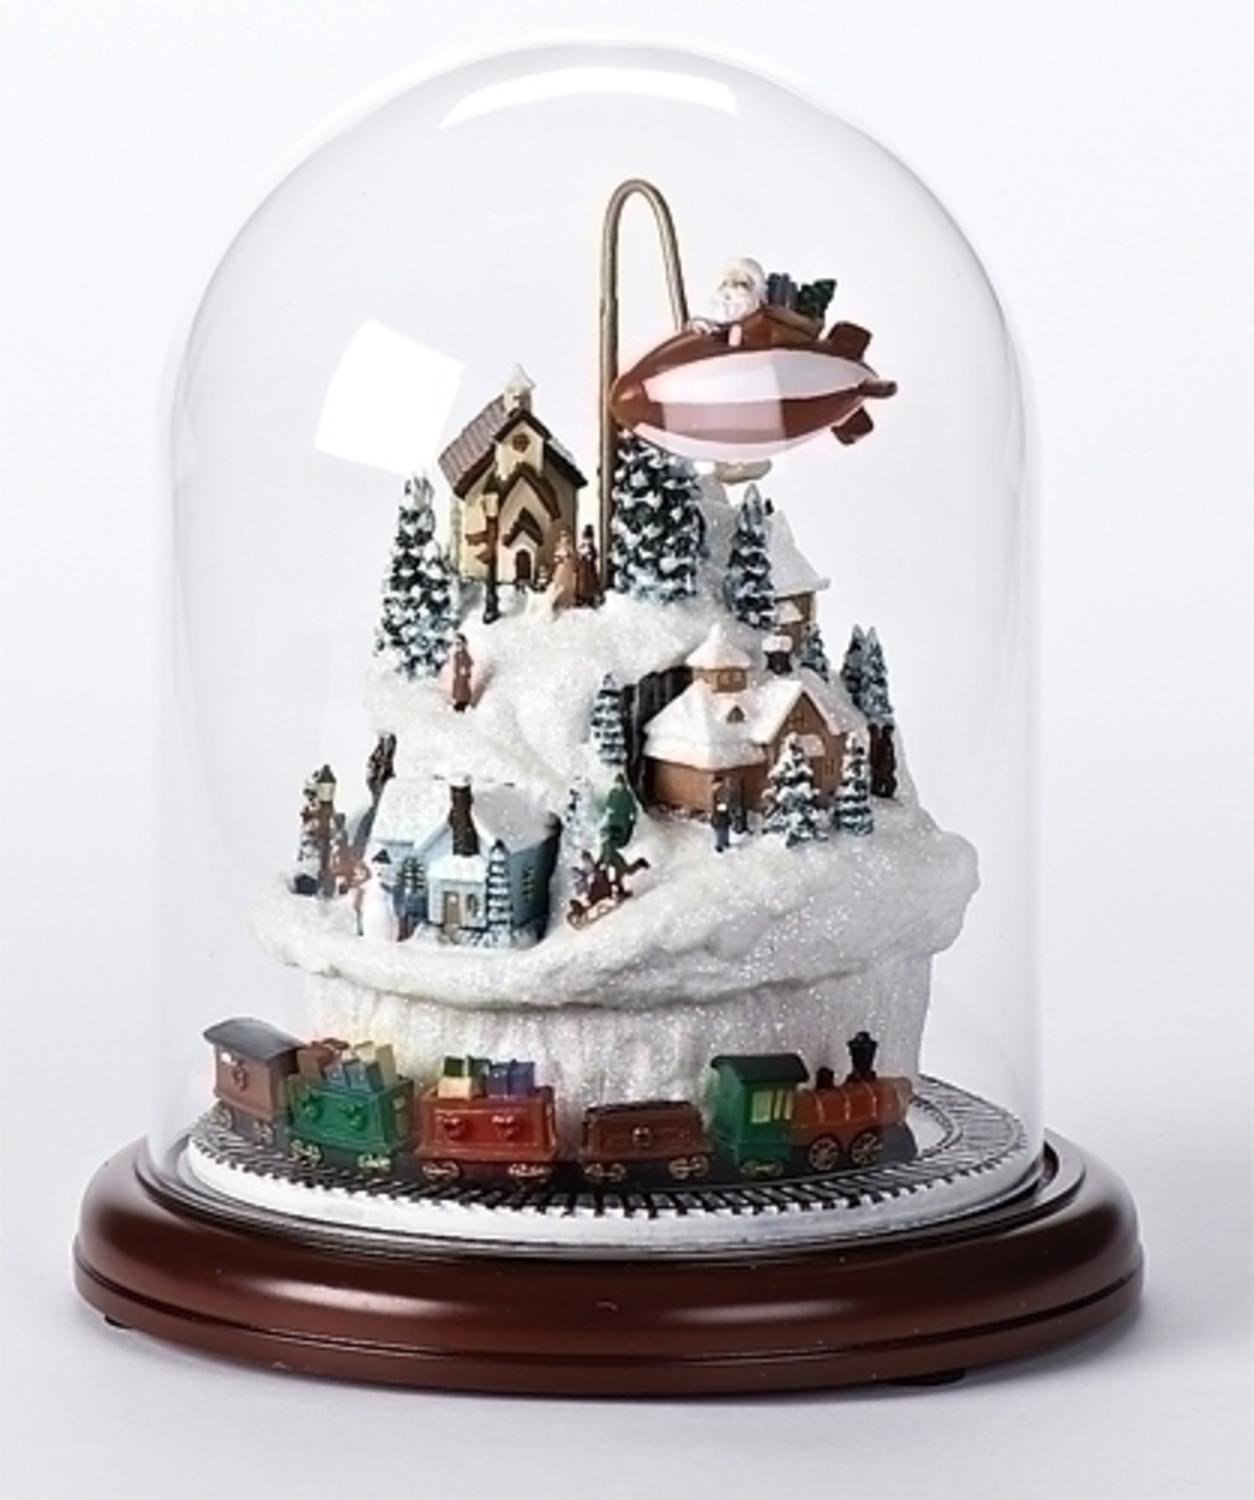 amazoncom 9 lighted musical village scene with rotating train christmas dome decoration kitchen dining - Lighted Train Christmas Decoration